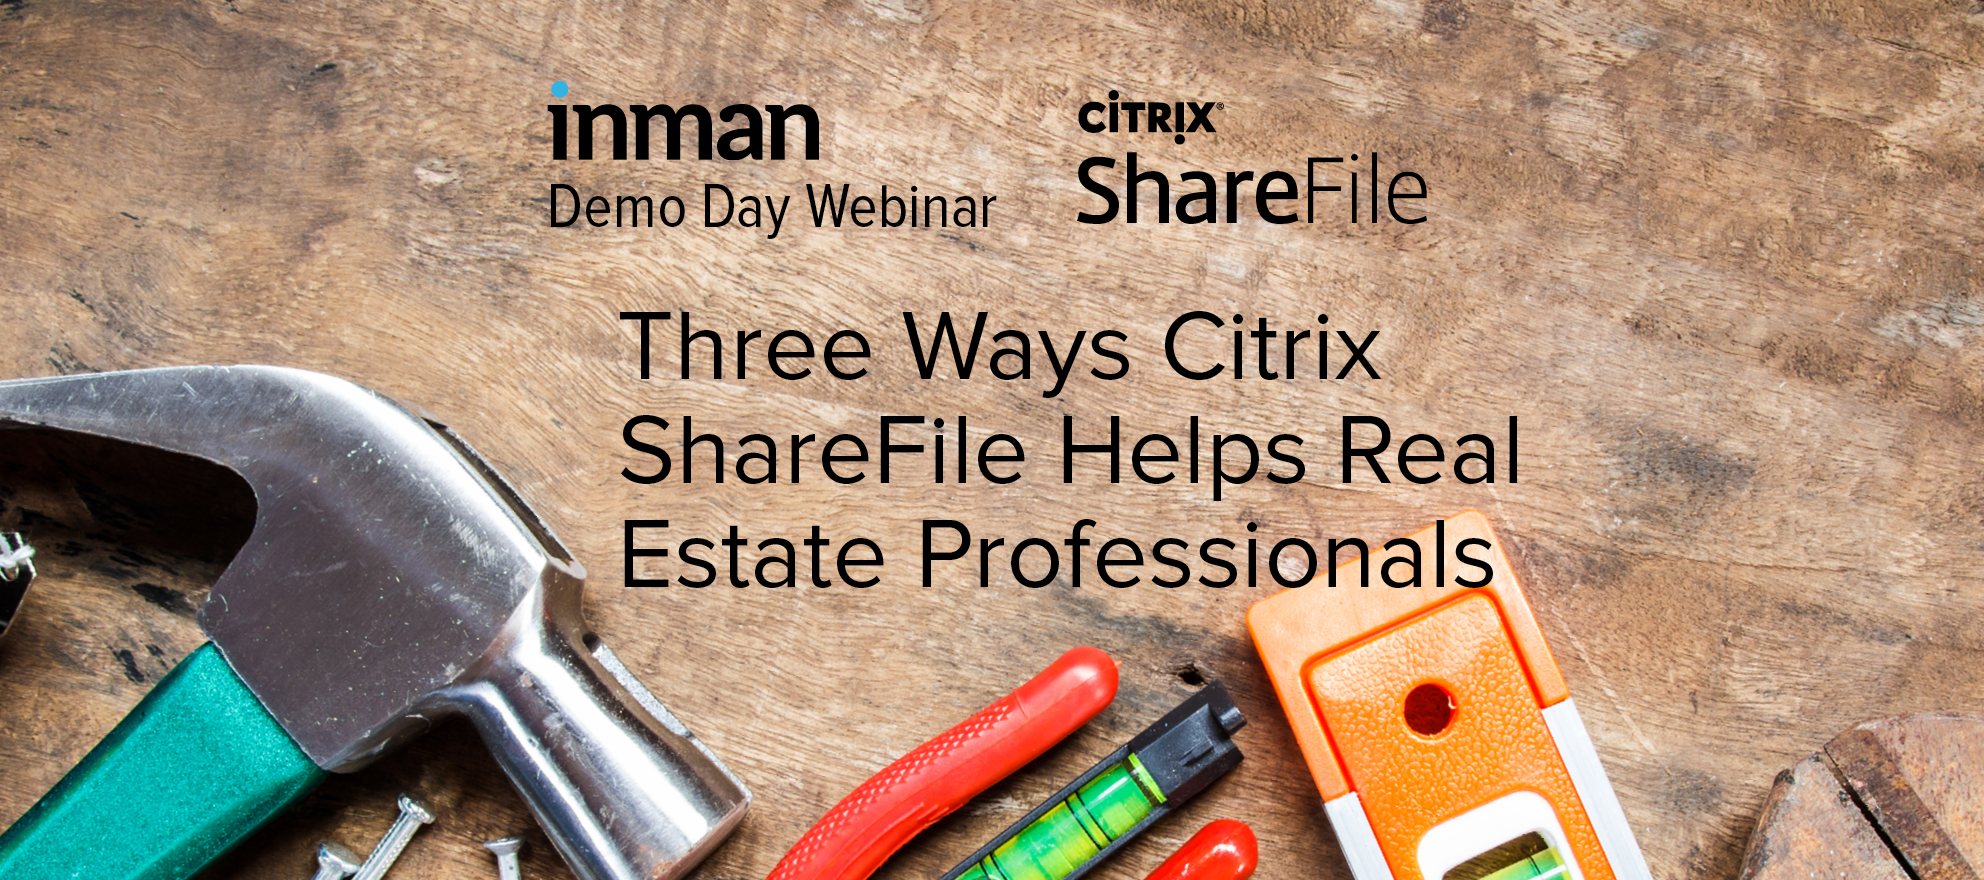 Three ways Citrix ShareFile helps real estate professionals